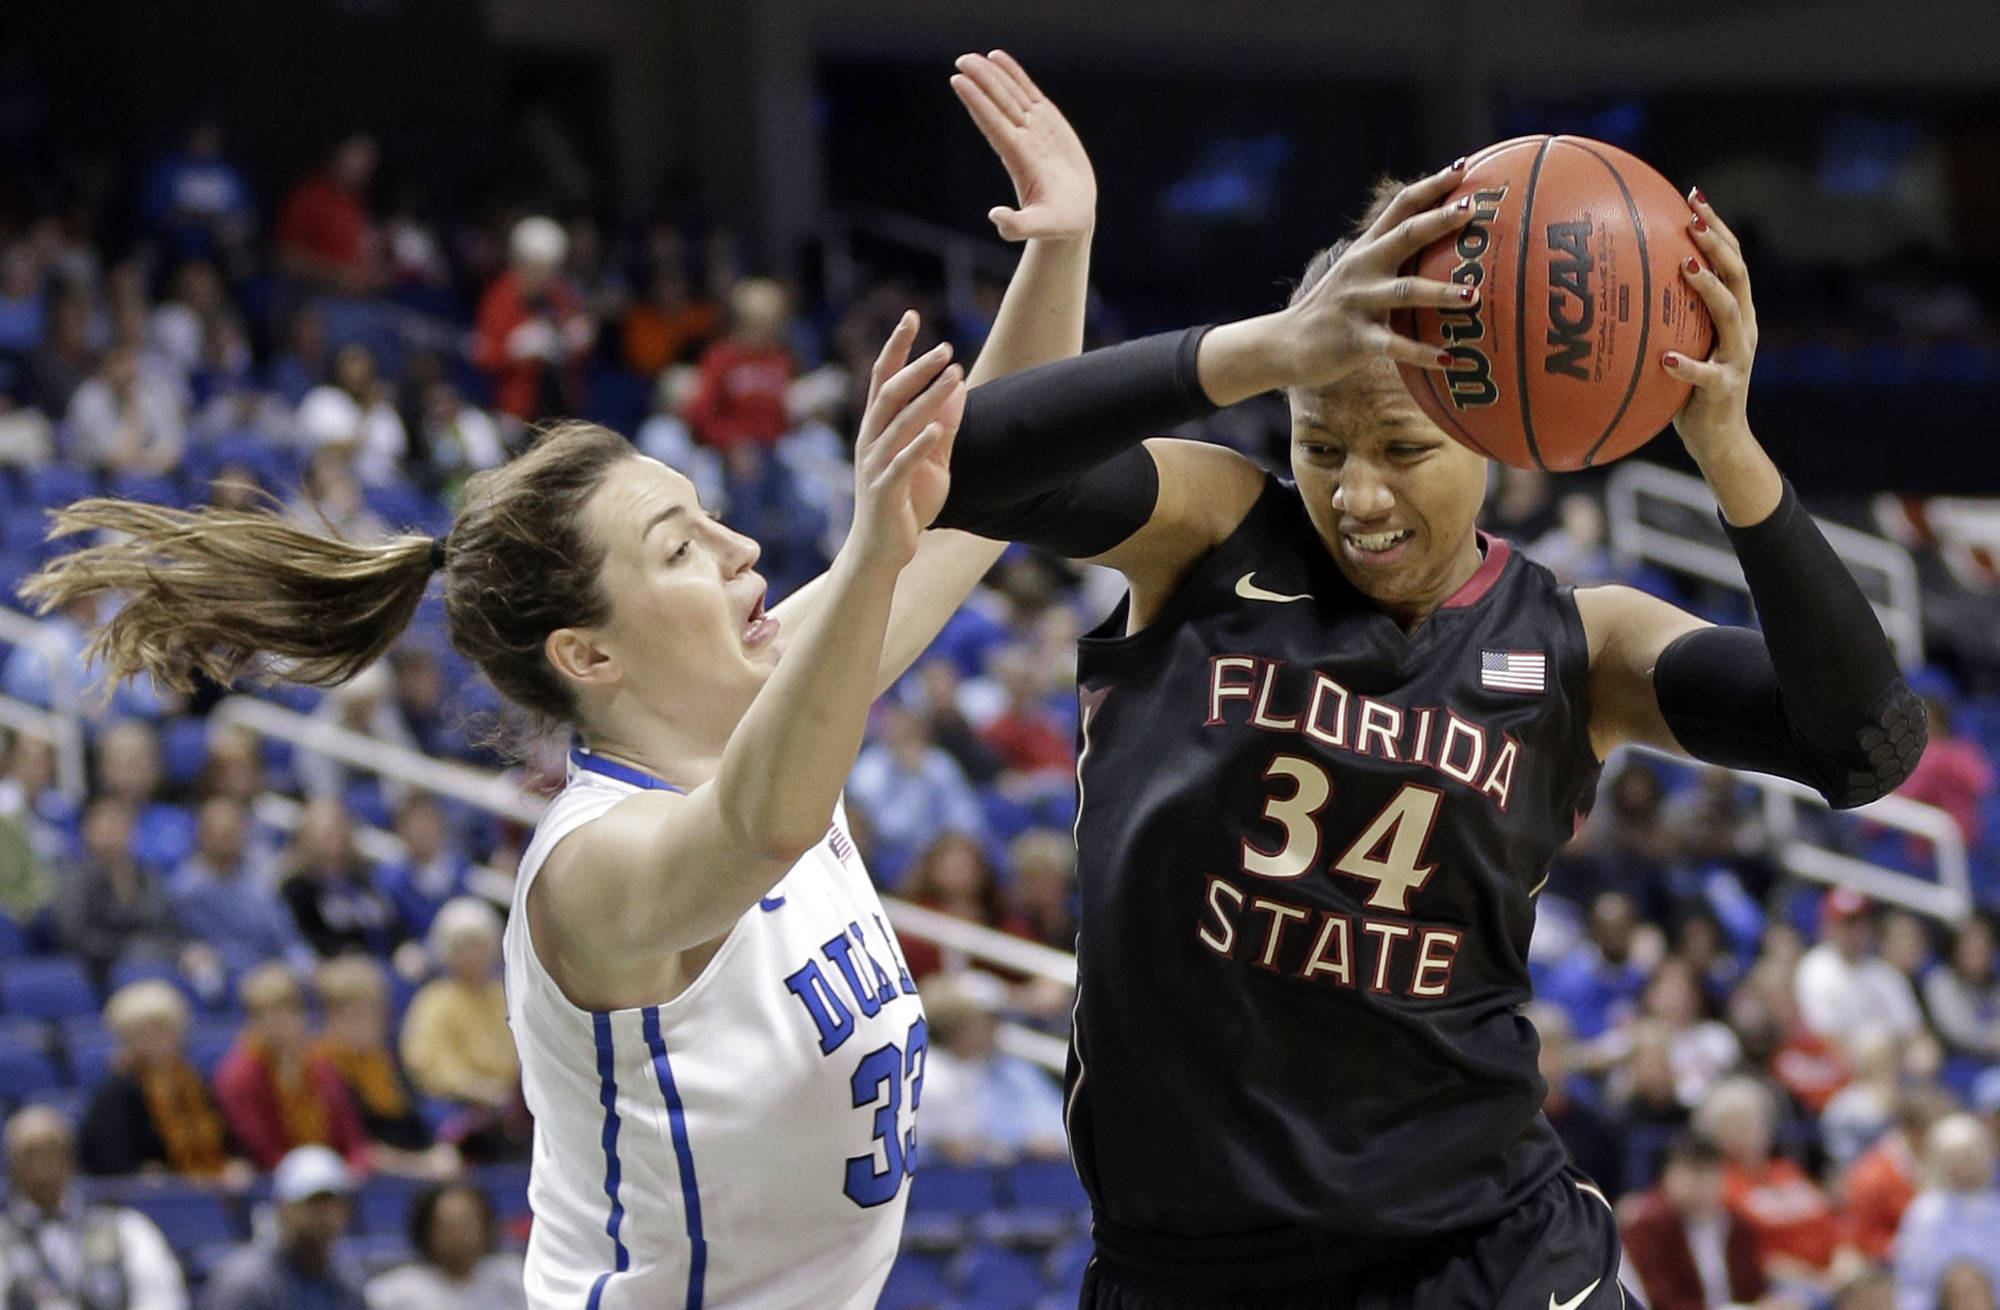 Florida State's Chelsea Davis (34) drives on Duke's Haley Peters (33). (AP Photo/Chuck Burton)